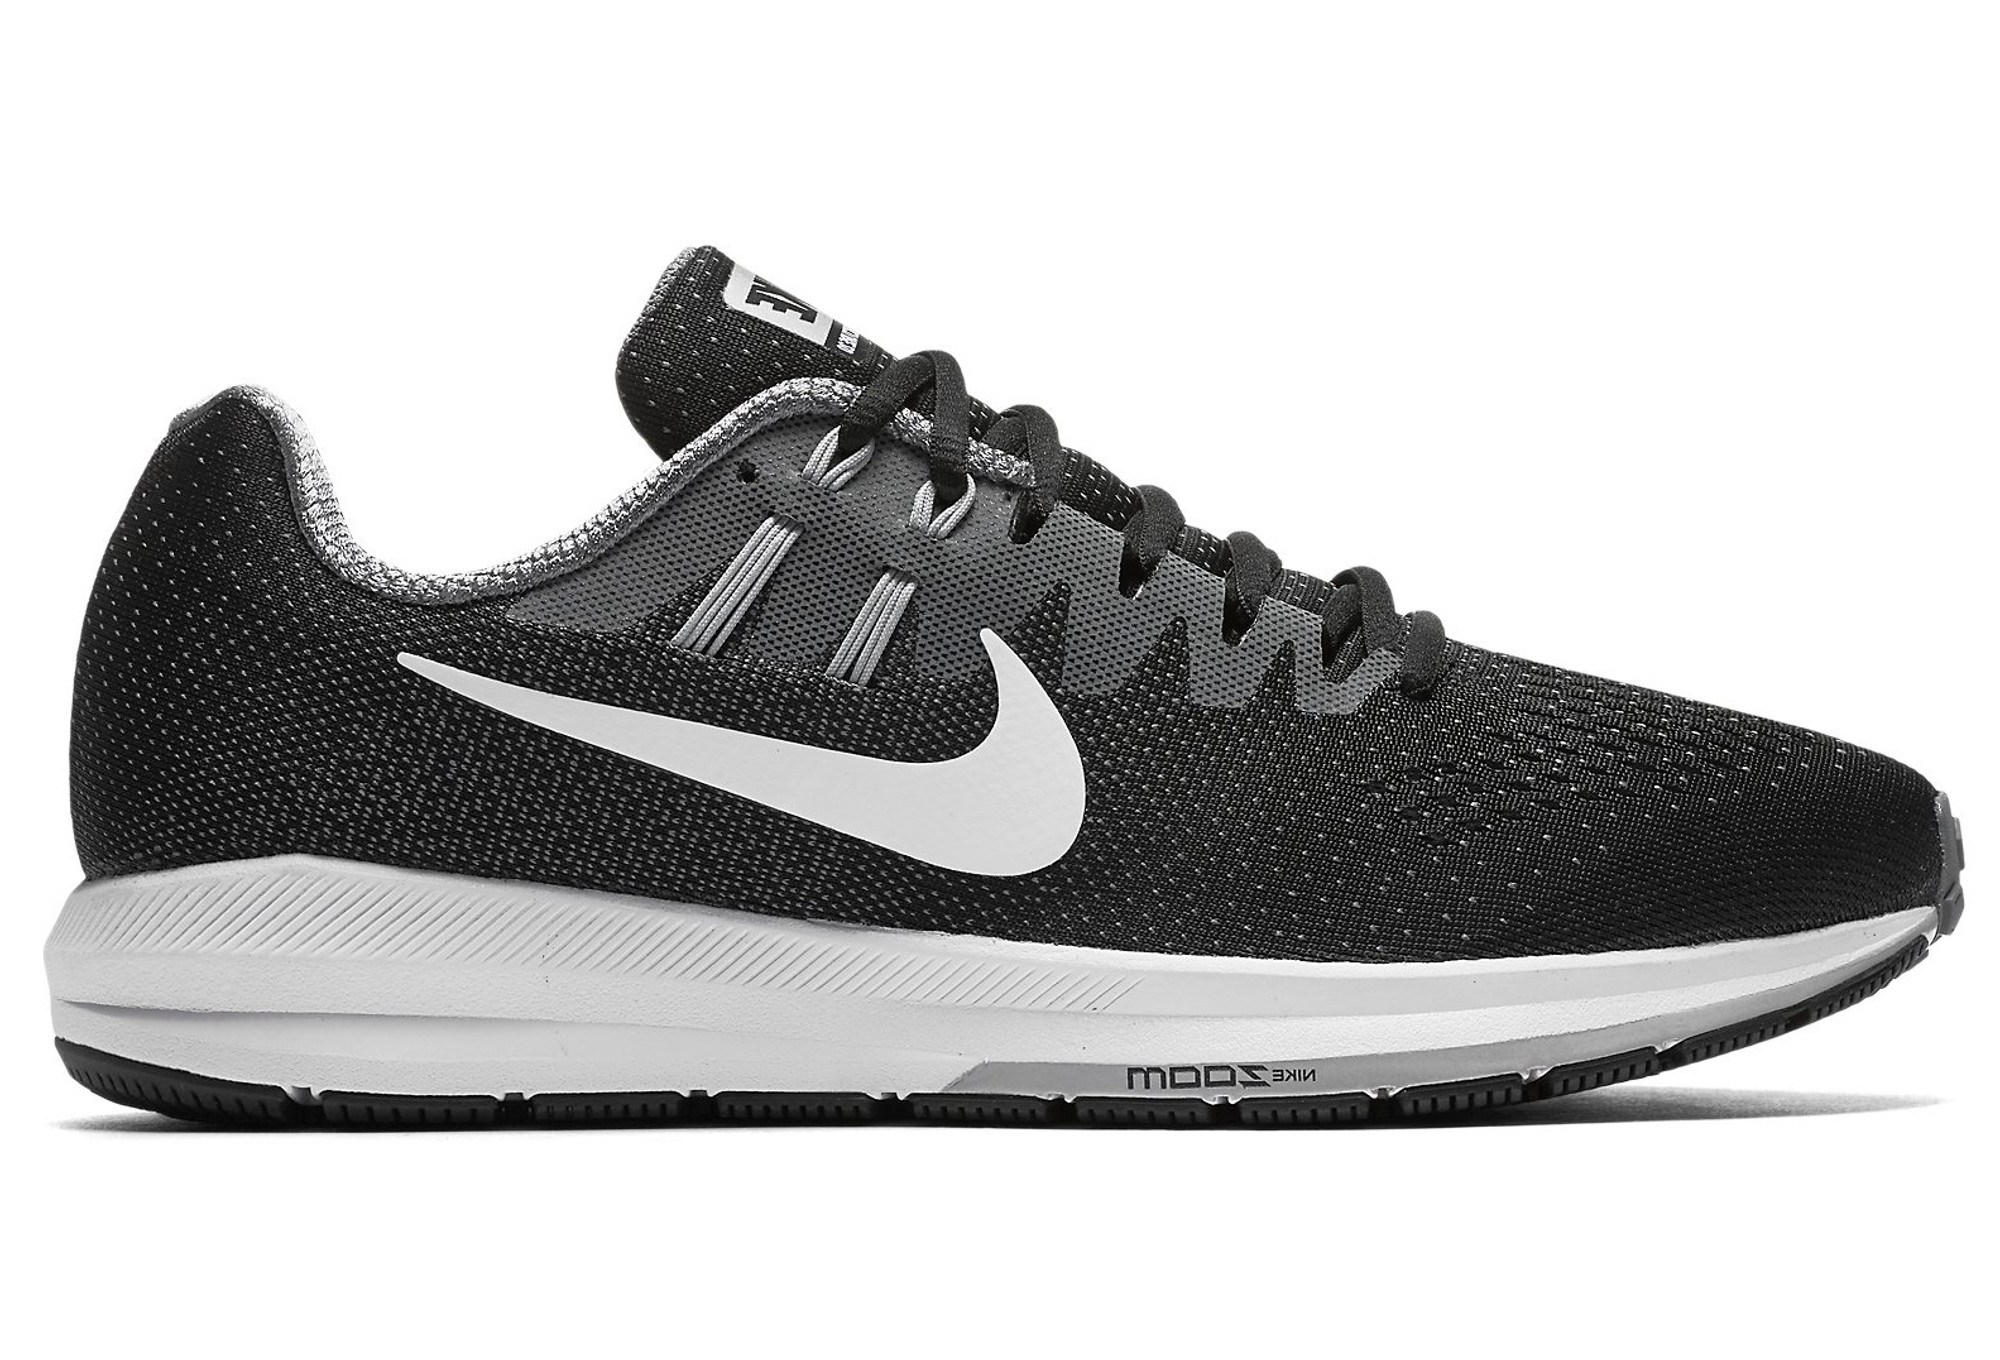 new style edb69 c45dc NIKE AIR ZOOM STRUCTURE 20 Black White Grey Women